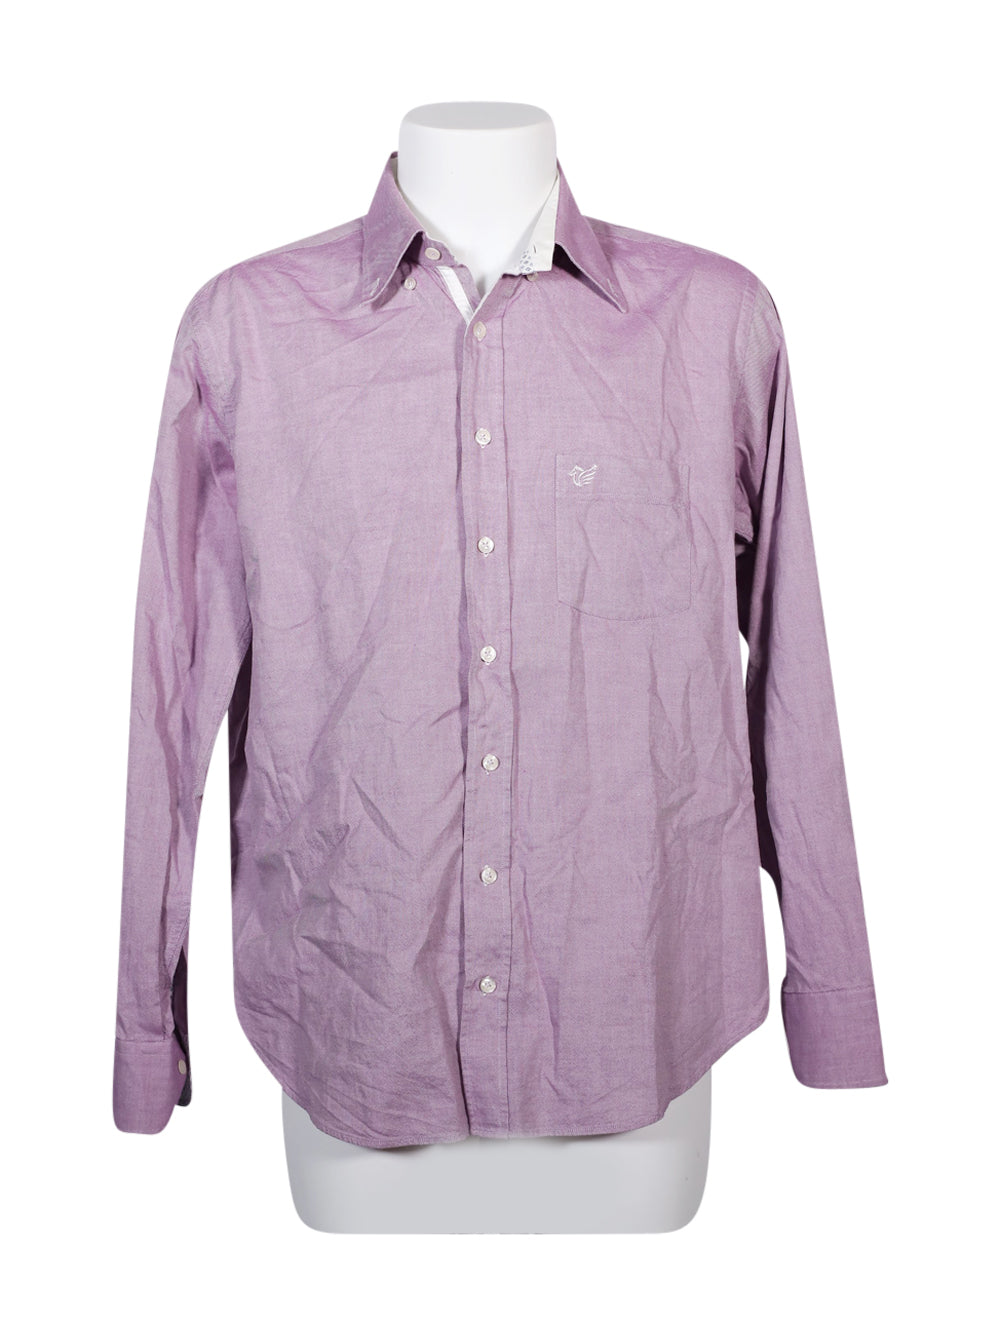 Front photo of Preloved caporiccio Pink Man's shirt - size 42/XL